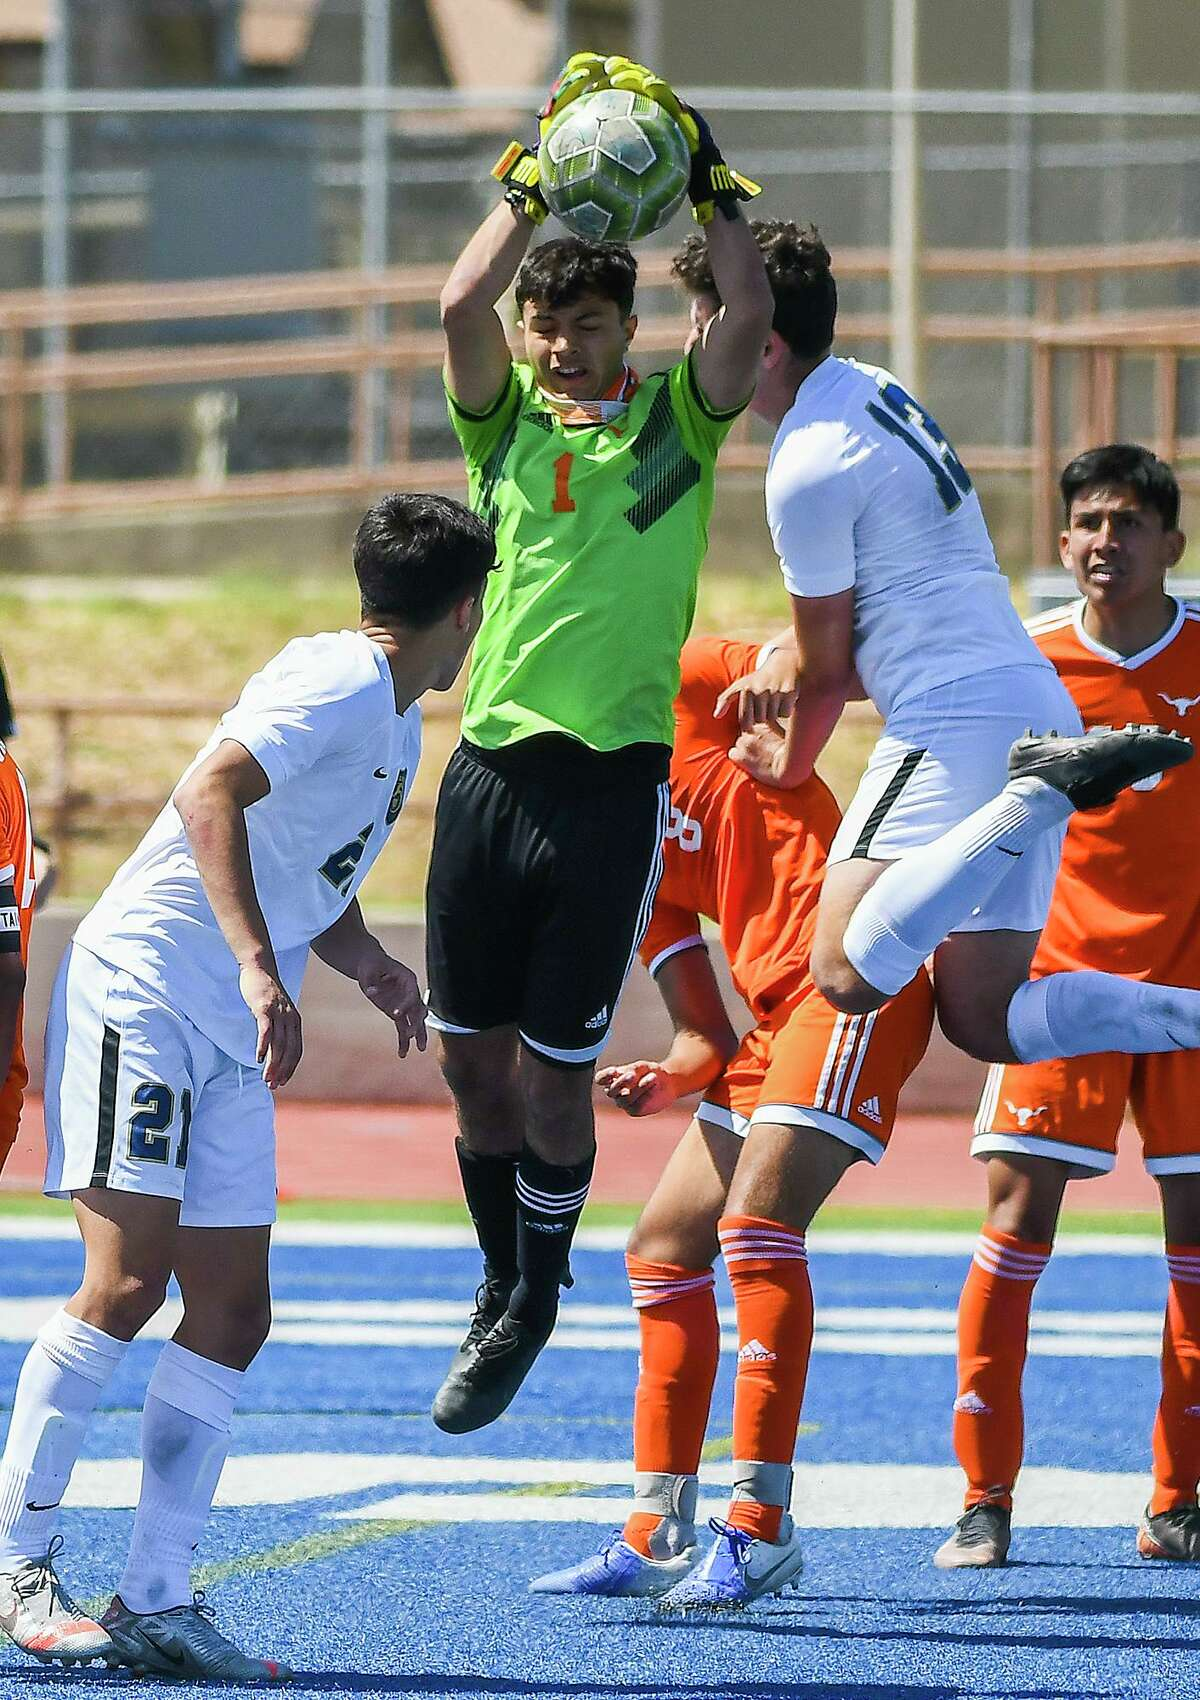 United's Roberto Ortiz was named the District 30-6A Goalkeeper of the Year.